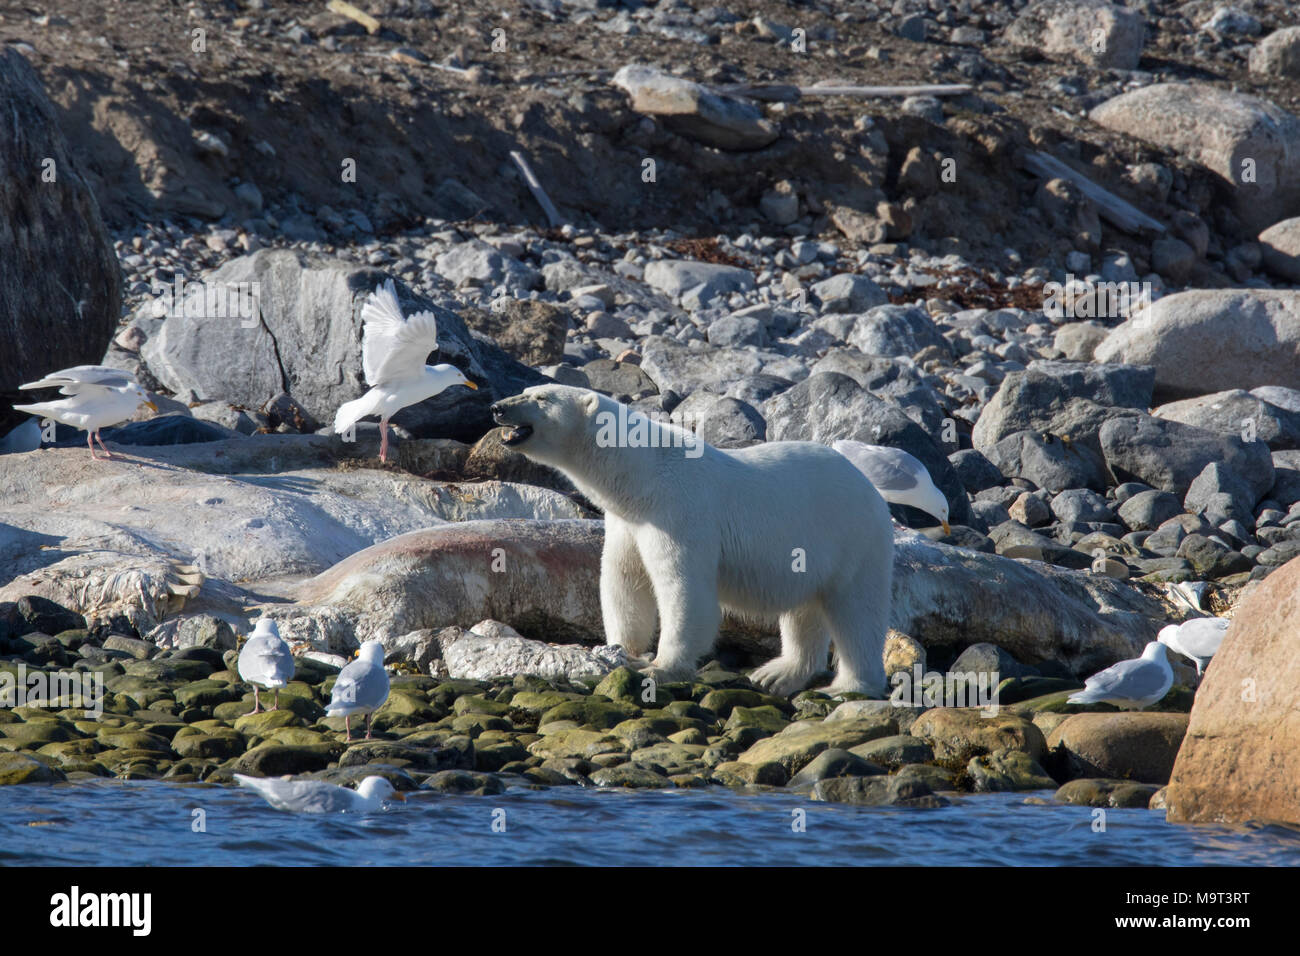 Scavenging Polar bear (Ursus maritimus / Thalarctos maritimus) feeding on carcass of stranded dead whale along the Svalbard coast, Spitsbergen, Norway - Stock Image